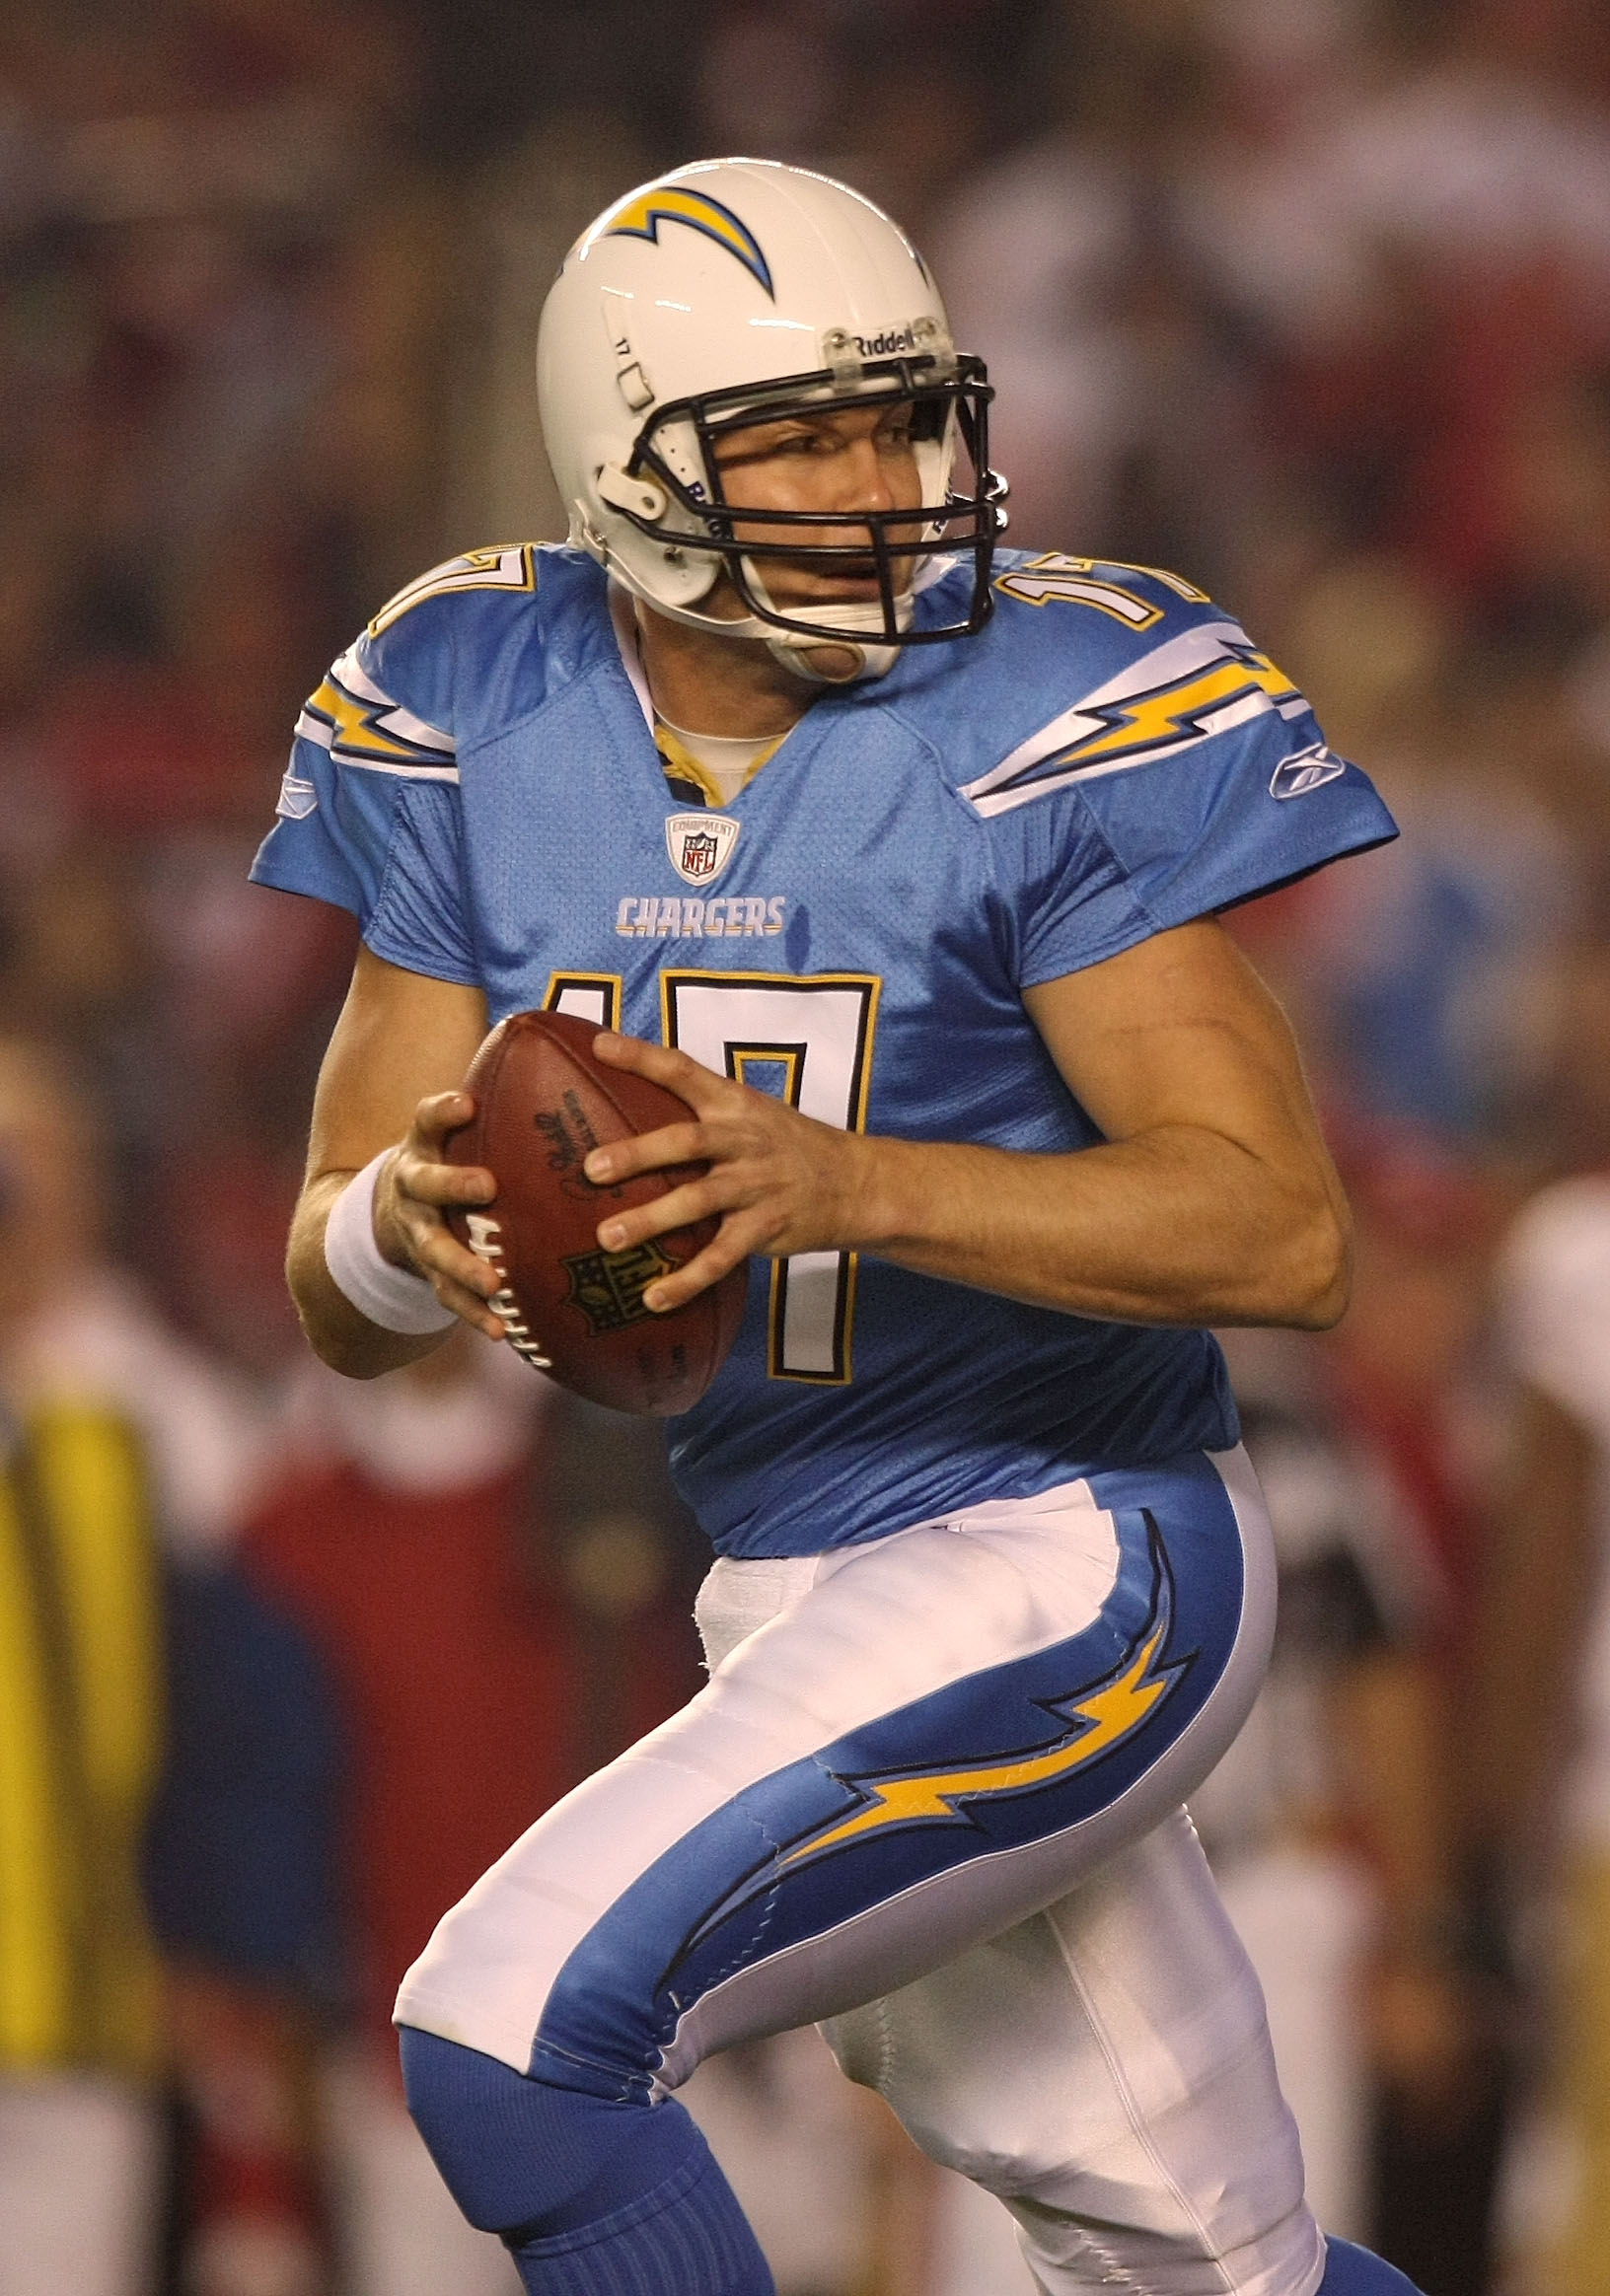 SAN DIEGO, CA - DECEMBER 16:  Quarterback Philip Rivers #17 of the San Diego Chargers drops back to pass against the San Francisco 49ers at Qualcomm Stadium on December 16, 2010 in San Diego, California.  (Photo by Donald Miralle/Getty Images)